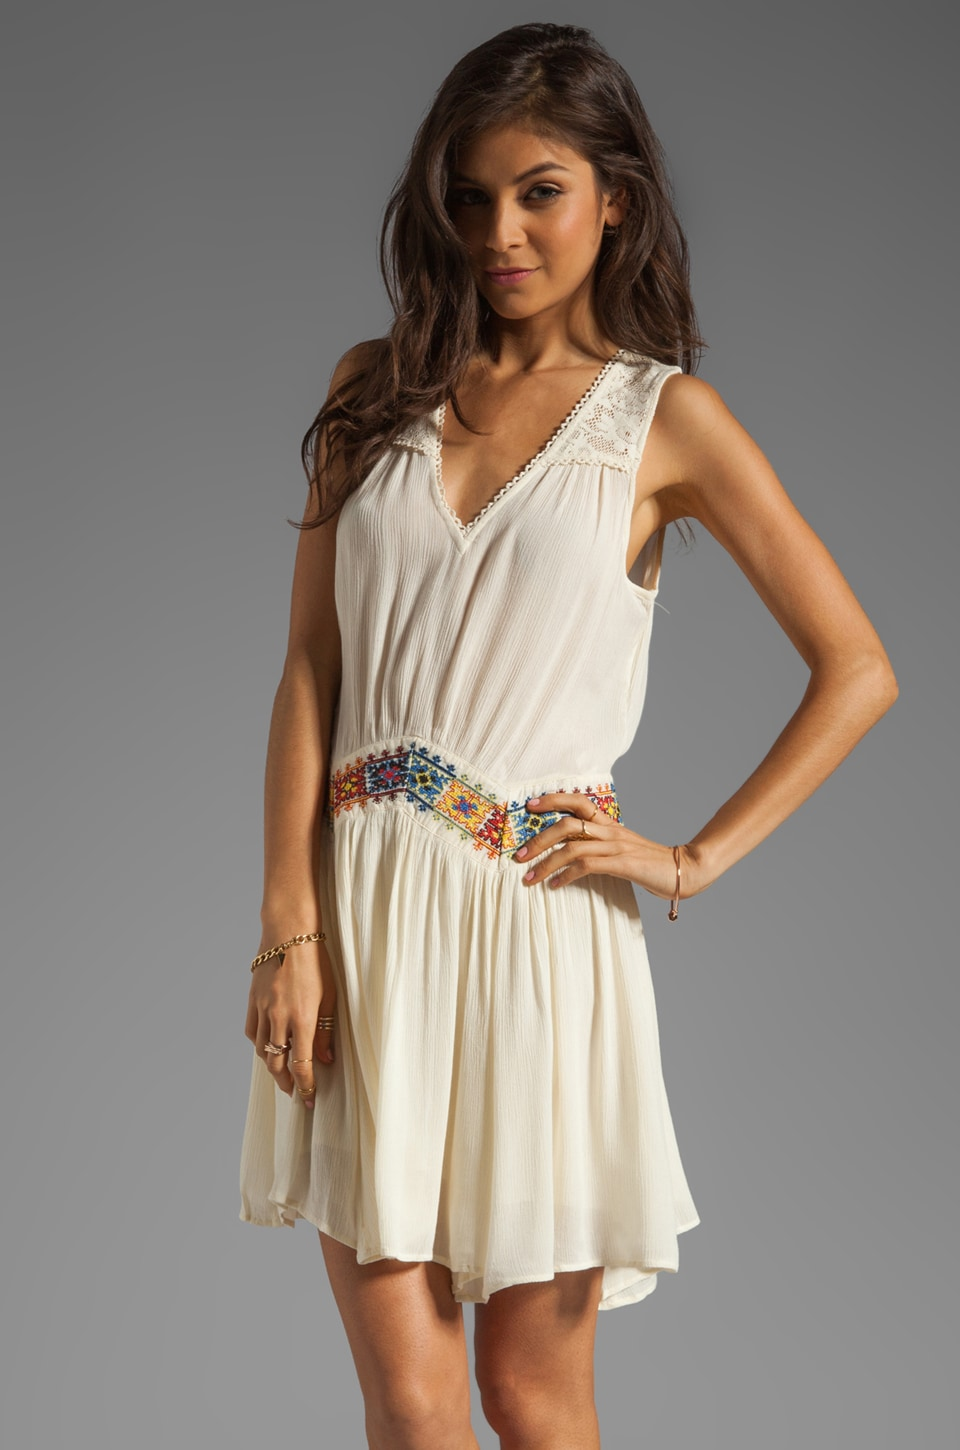 Free People Light Heart Dress in Ivory